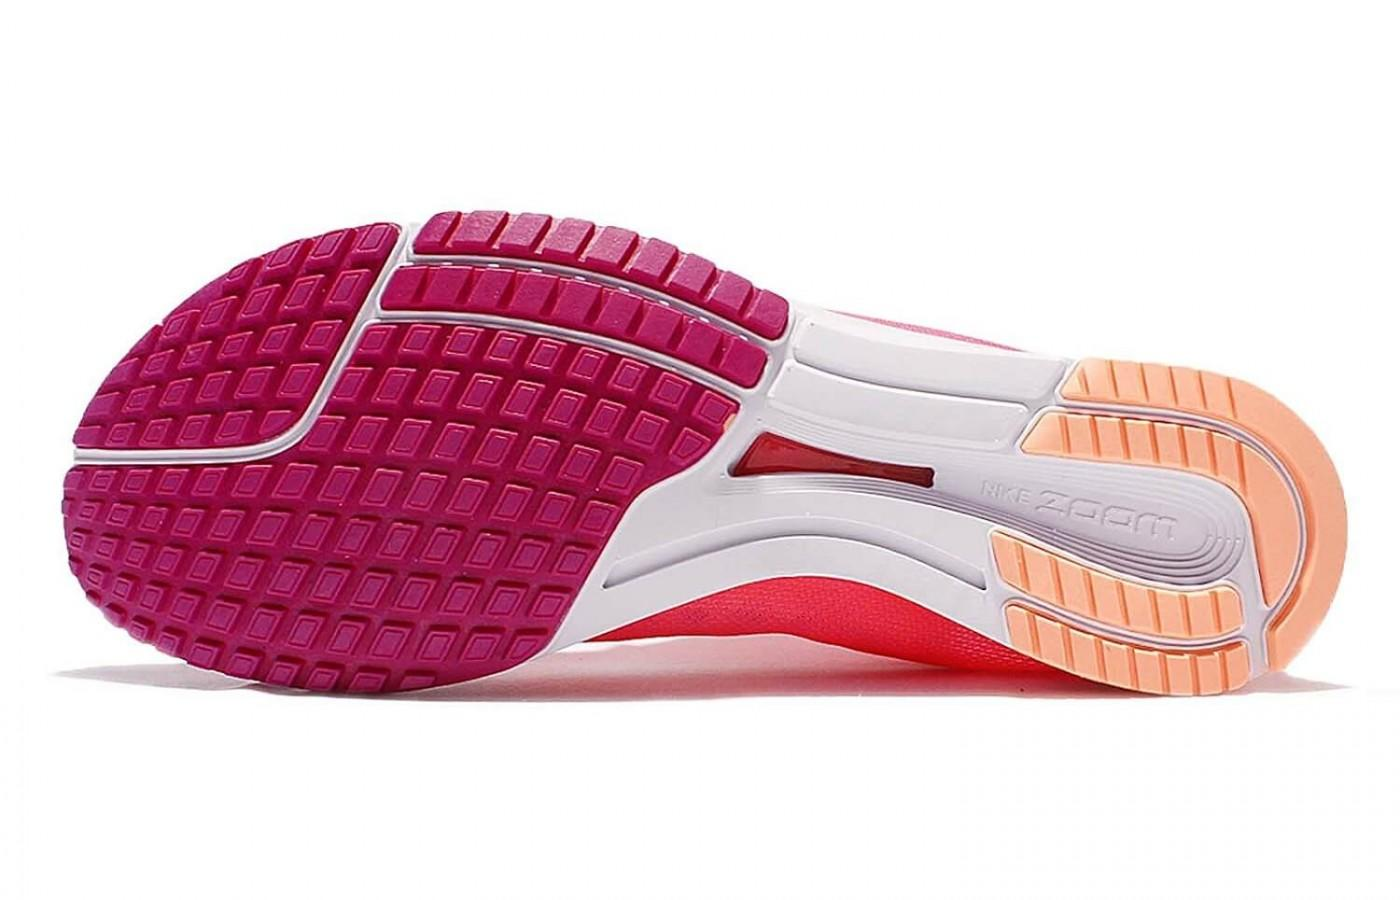 The outsole of the Nike Zoom Streak LT3